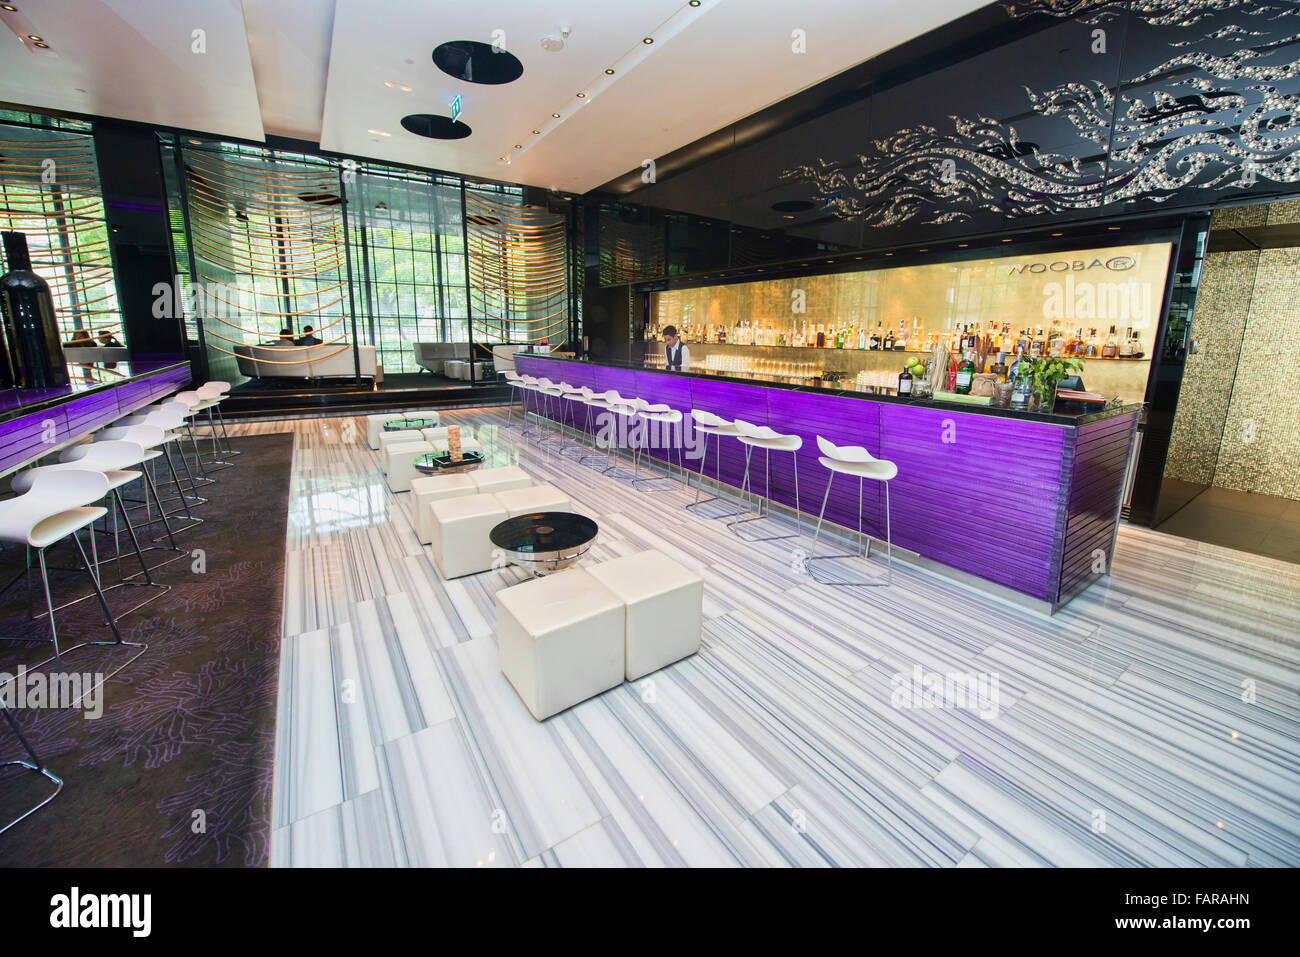 Chic urban design at the W Hotel, Bangkok, Thailand - Stock Image